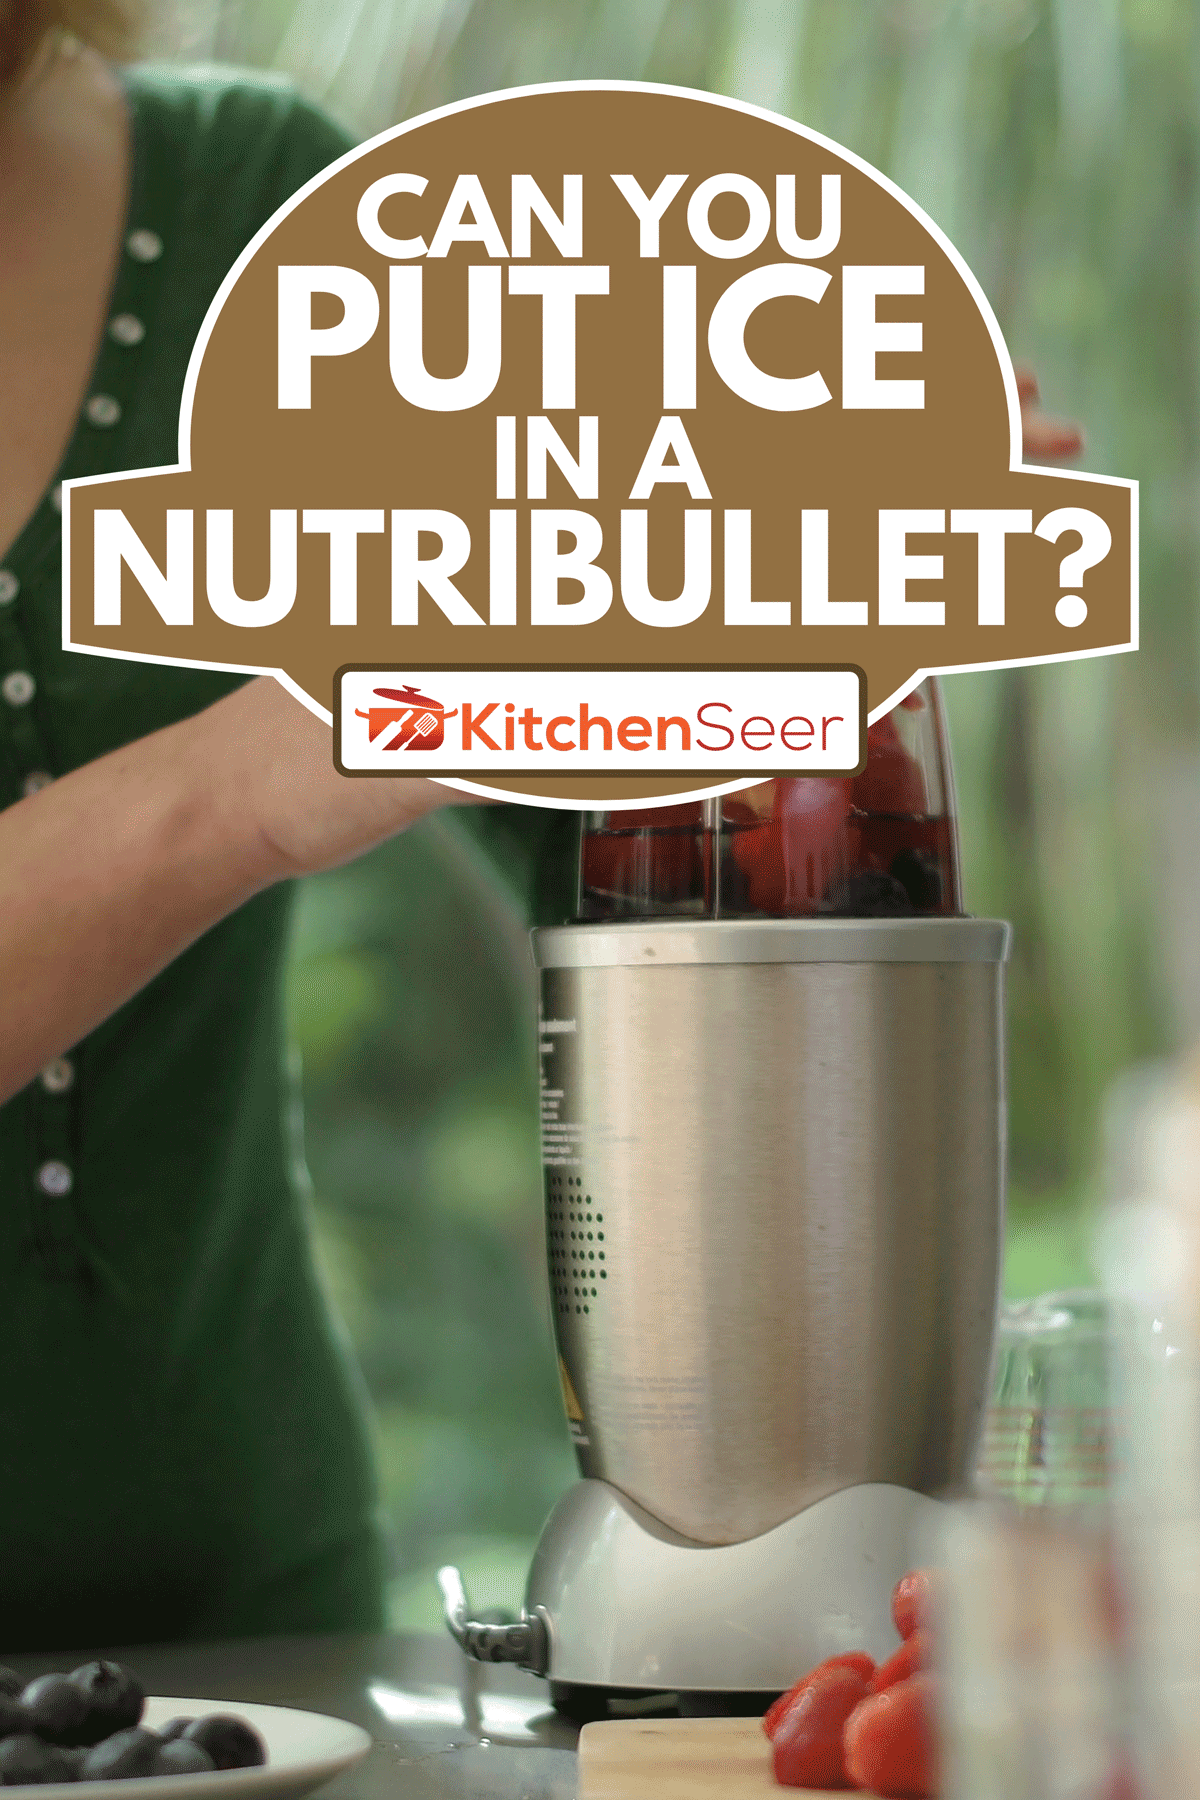 A woman making a fruit smoothie drink using a high speed blender after loading it with fruit, Can You Put Ice In A Nutribullet?